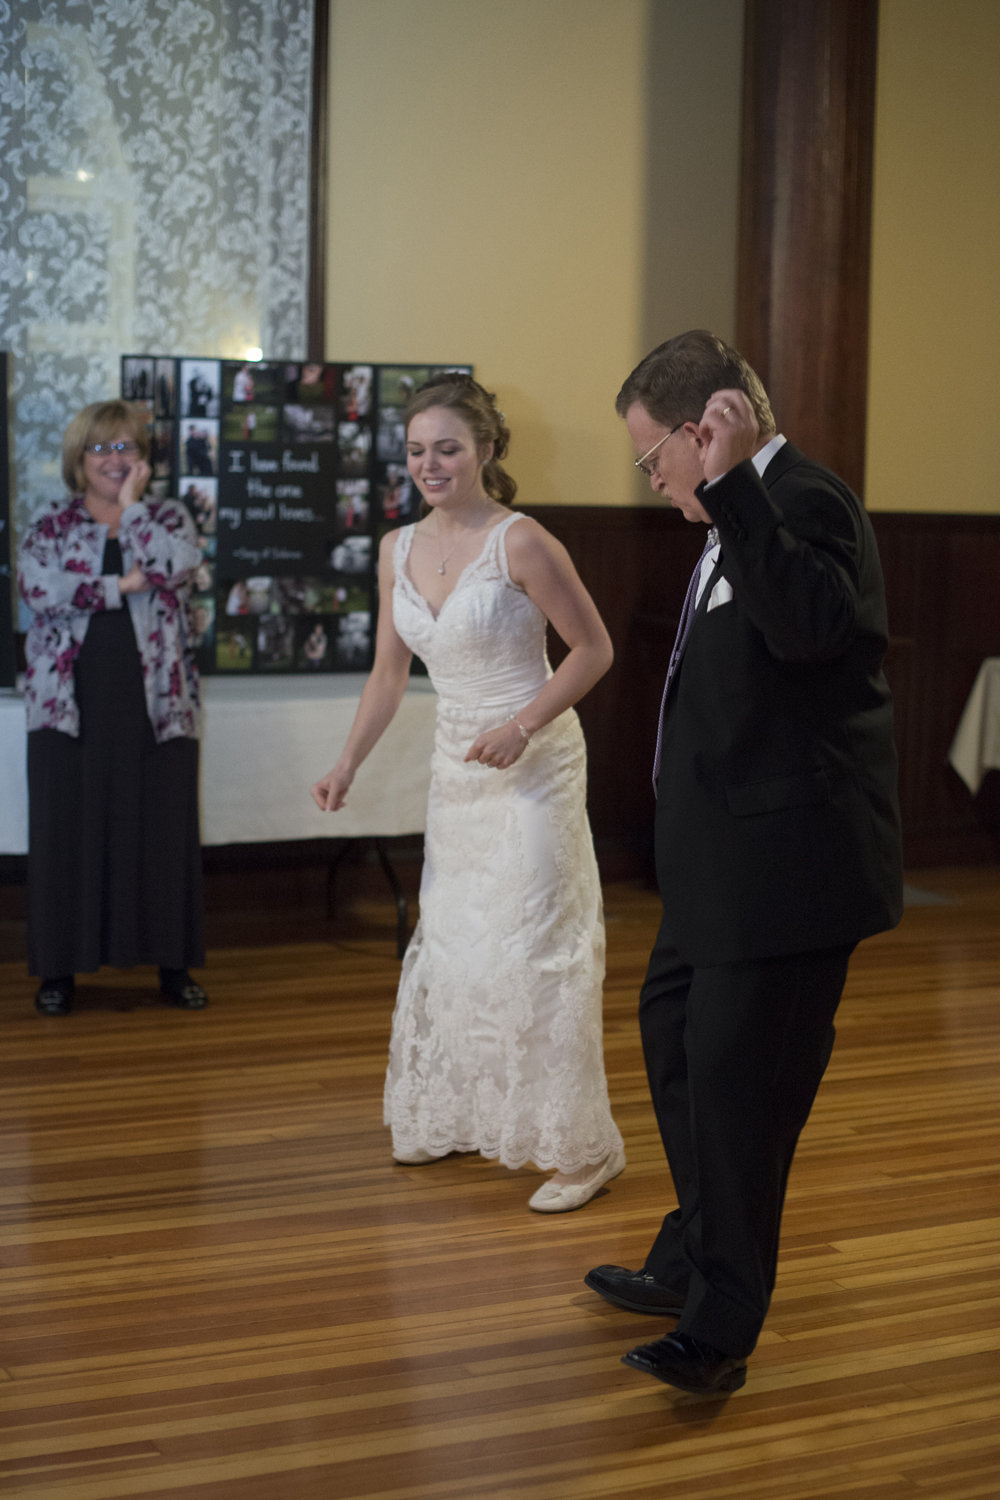 Father and bride dance to hip hop song Yeah at wedding